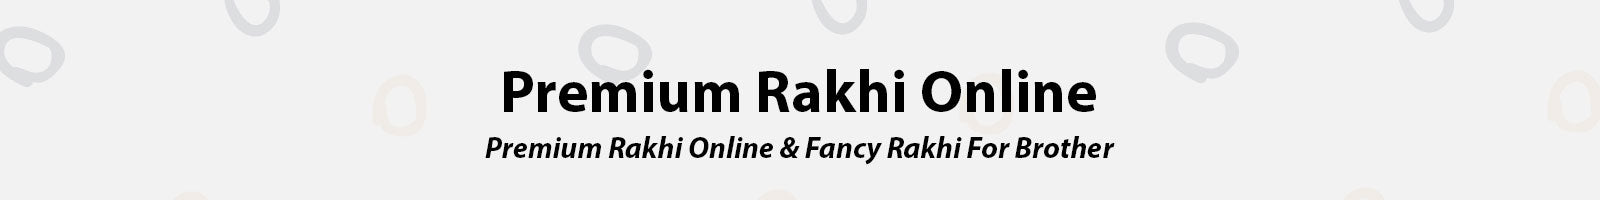 Premium and Fancy Rakhi Buy Online For Brother